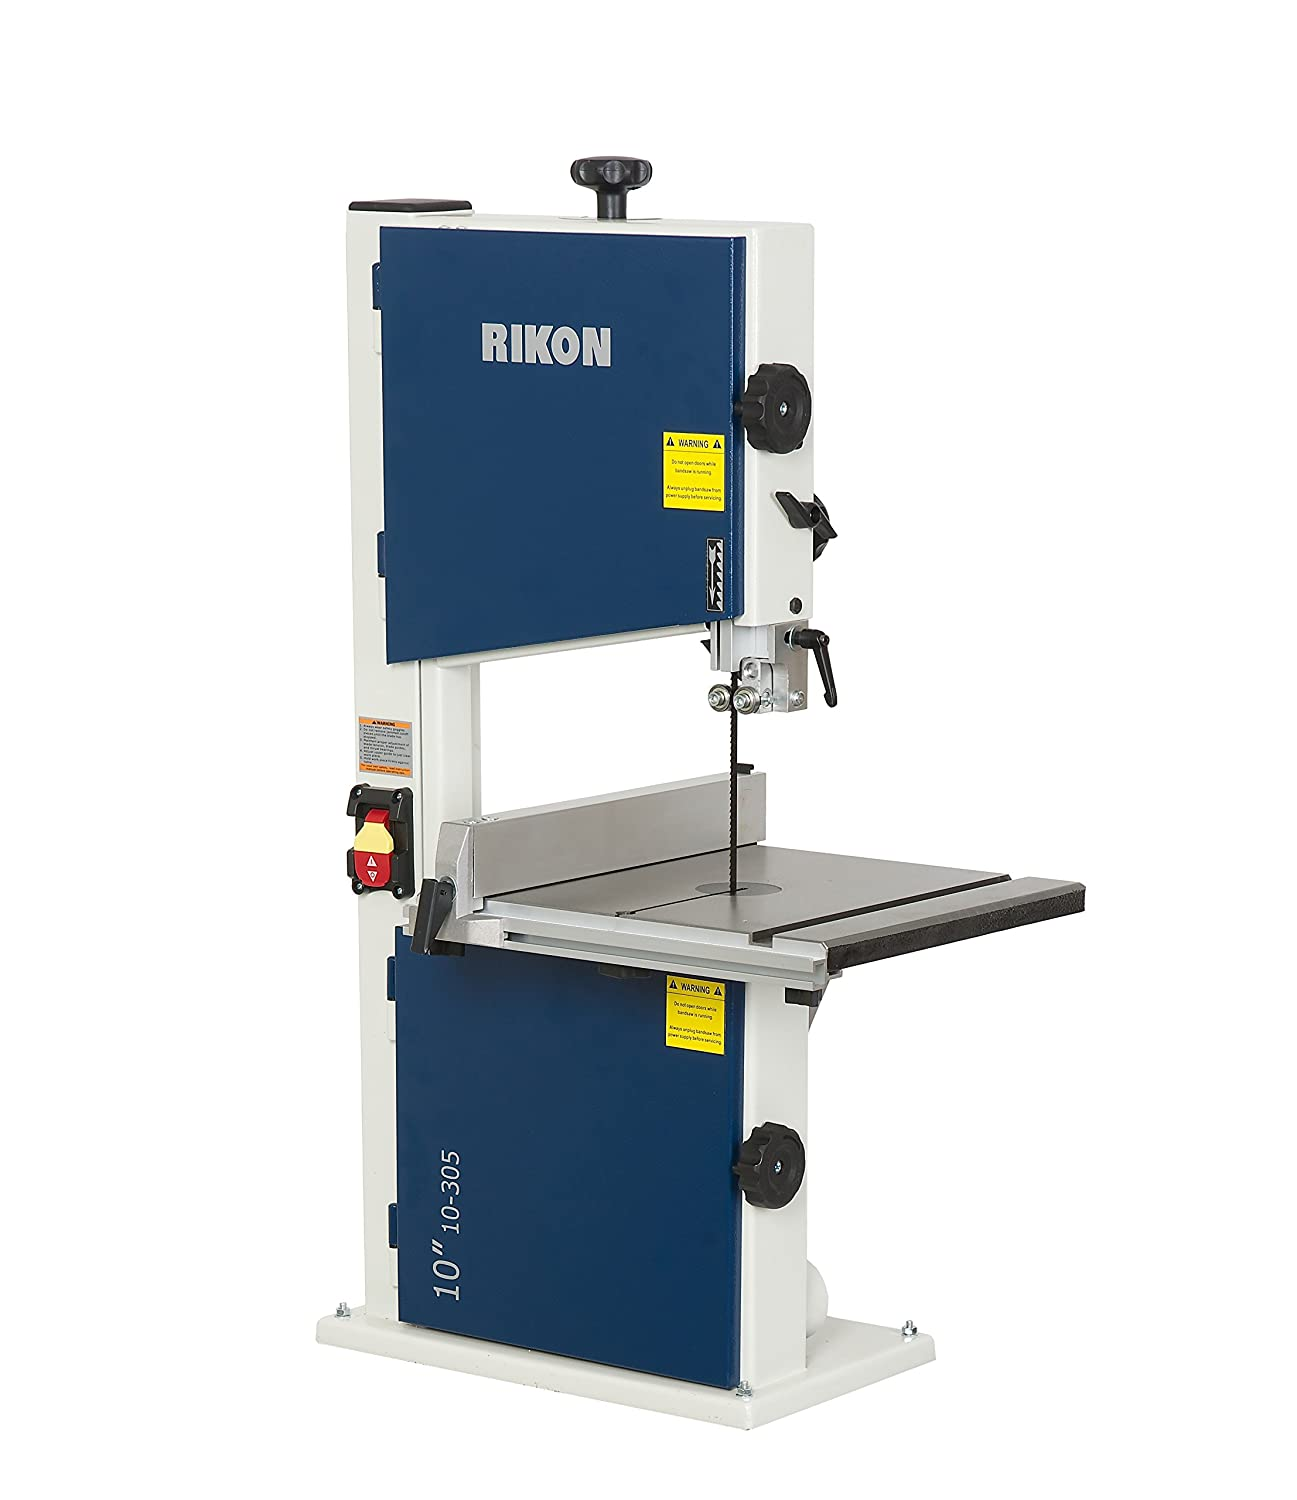 Rikon 10-305 Bandsaw With Fence, 10-Inch